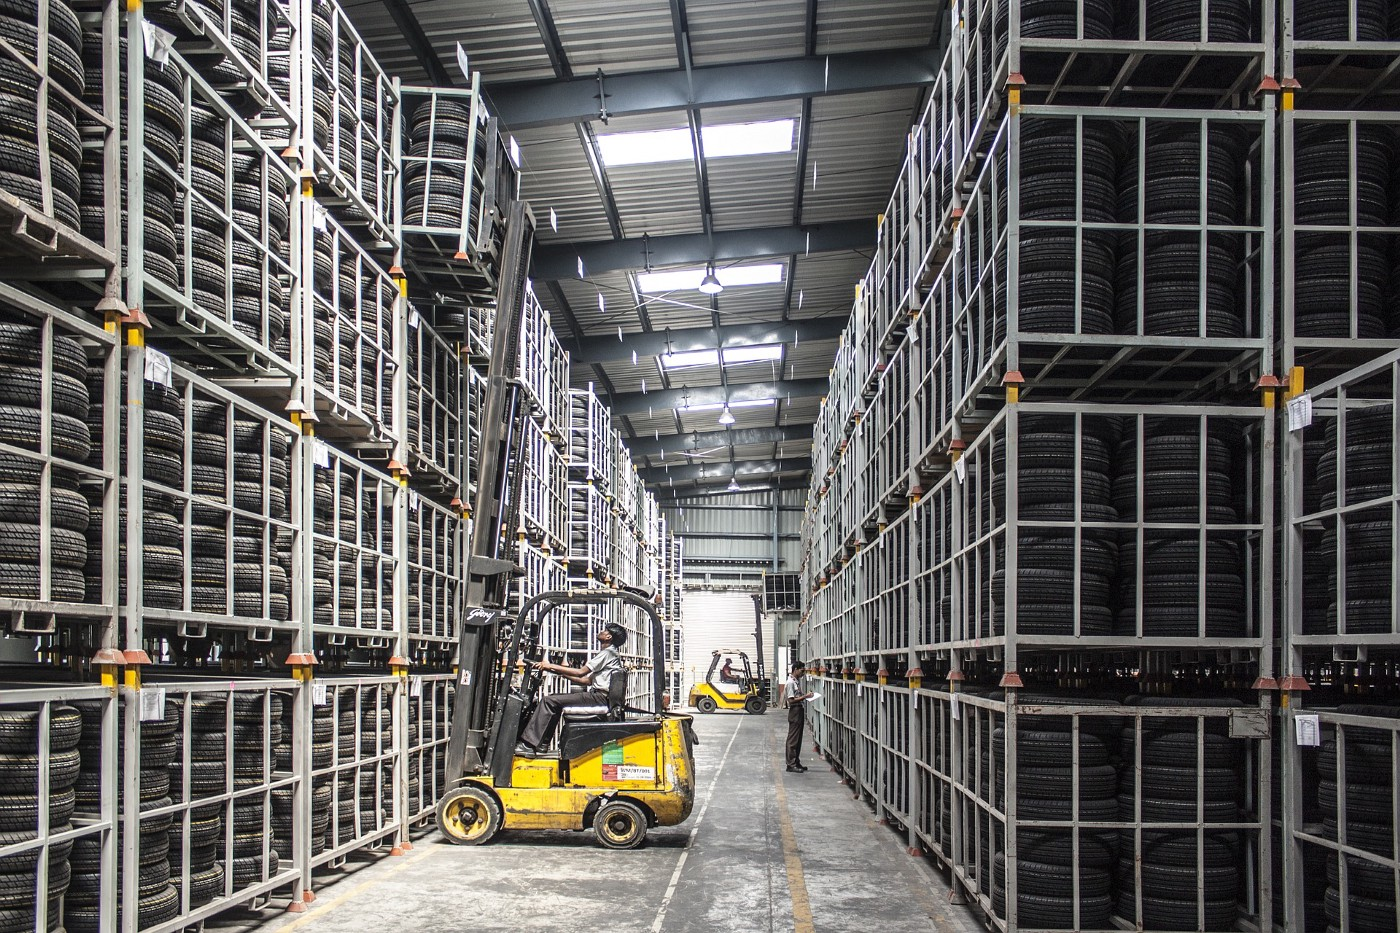 Fork lift moving containers